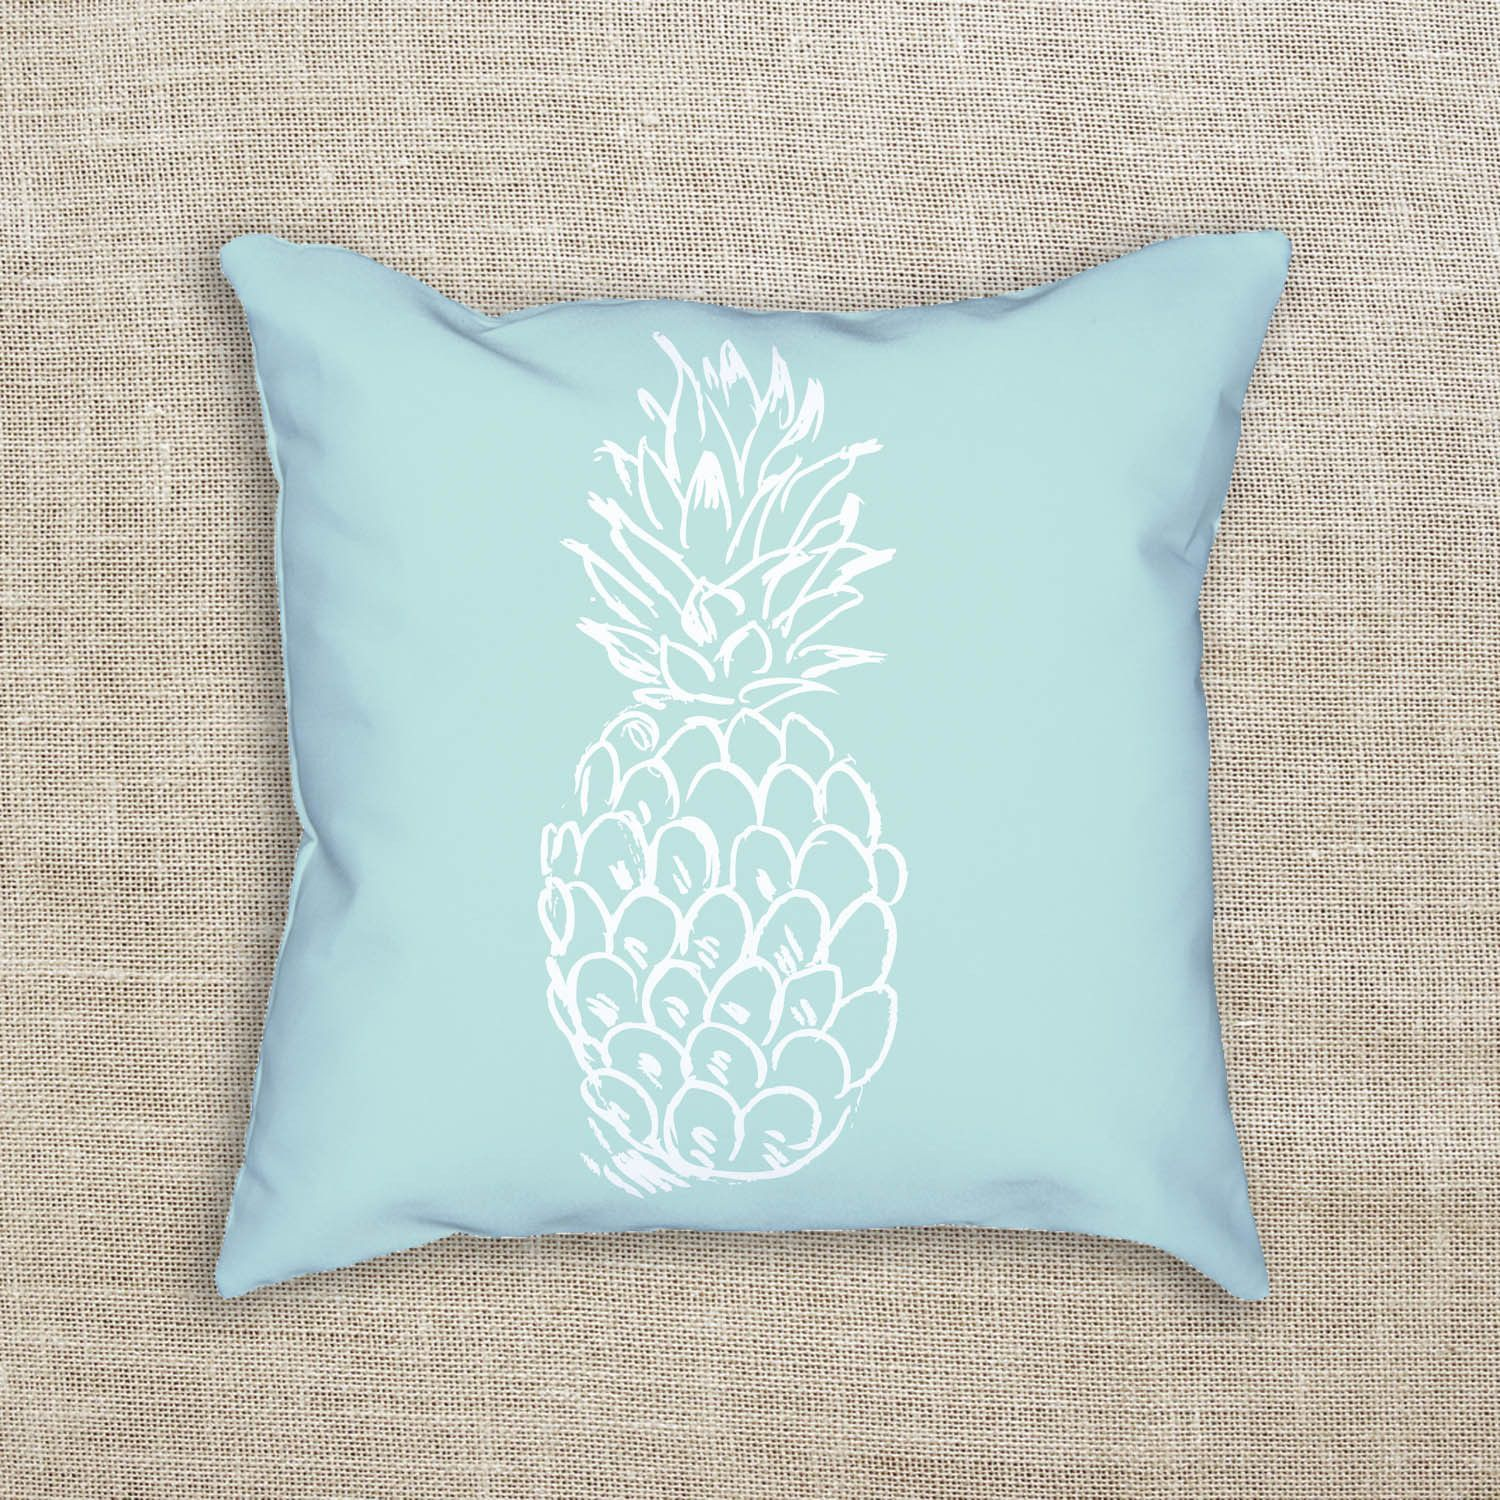 Cojines Decorativos Azules Welcome Guests To Your Home With This Mint Pineapple